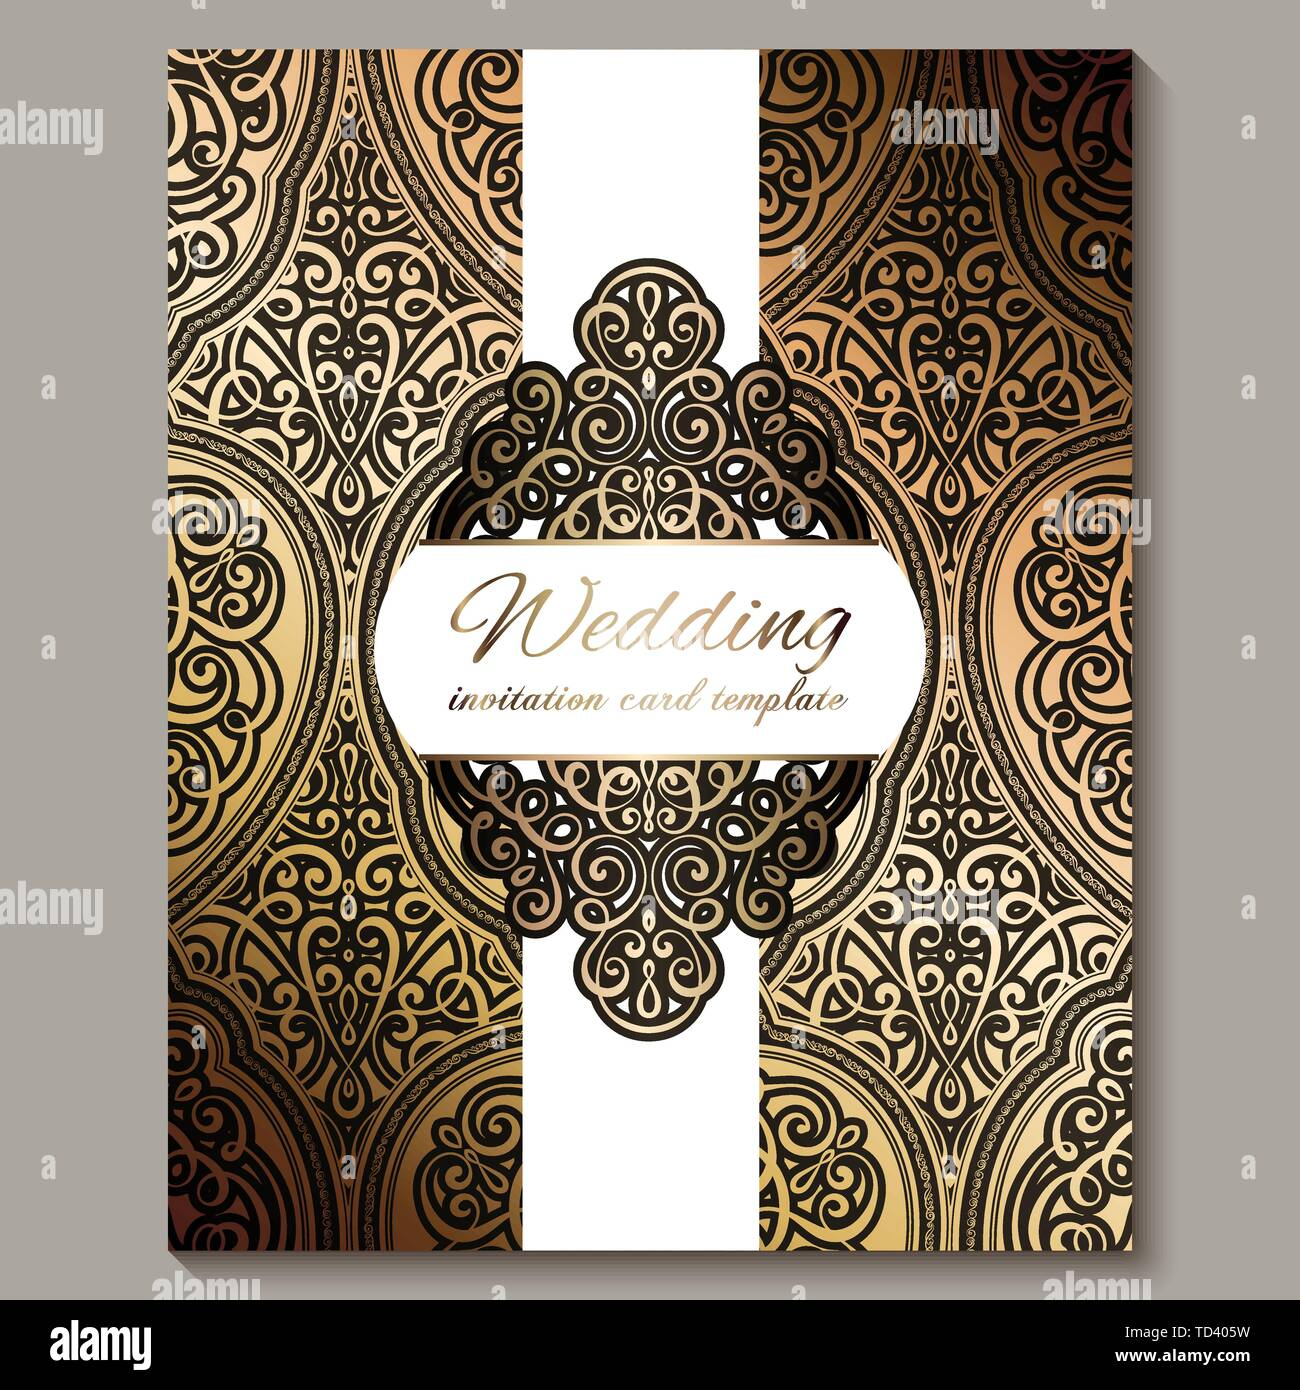 https www alamy com wedding invitation card with black and gold shiny eastern and baroque rich foliage ornate islamic background for your design islam arabic indian image249023653 html